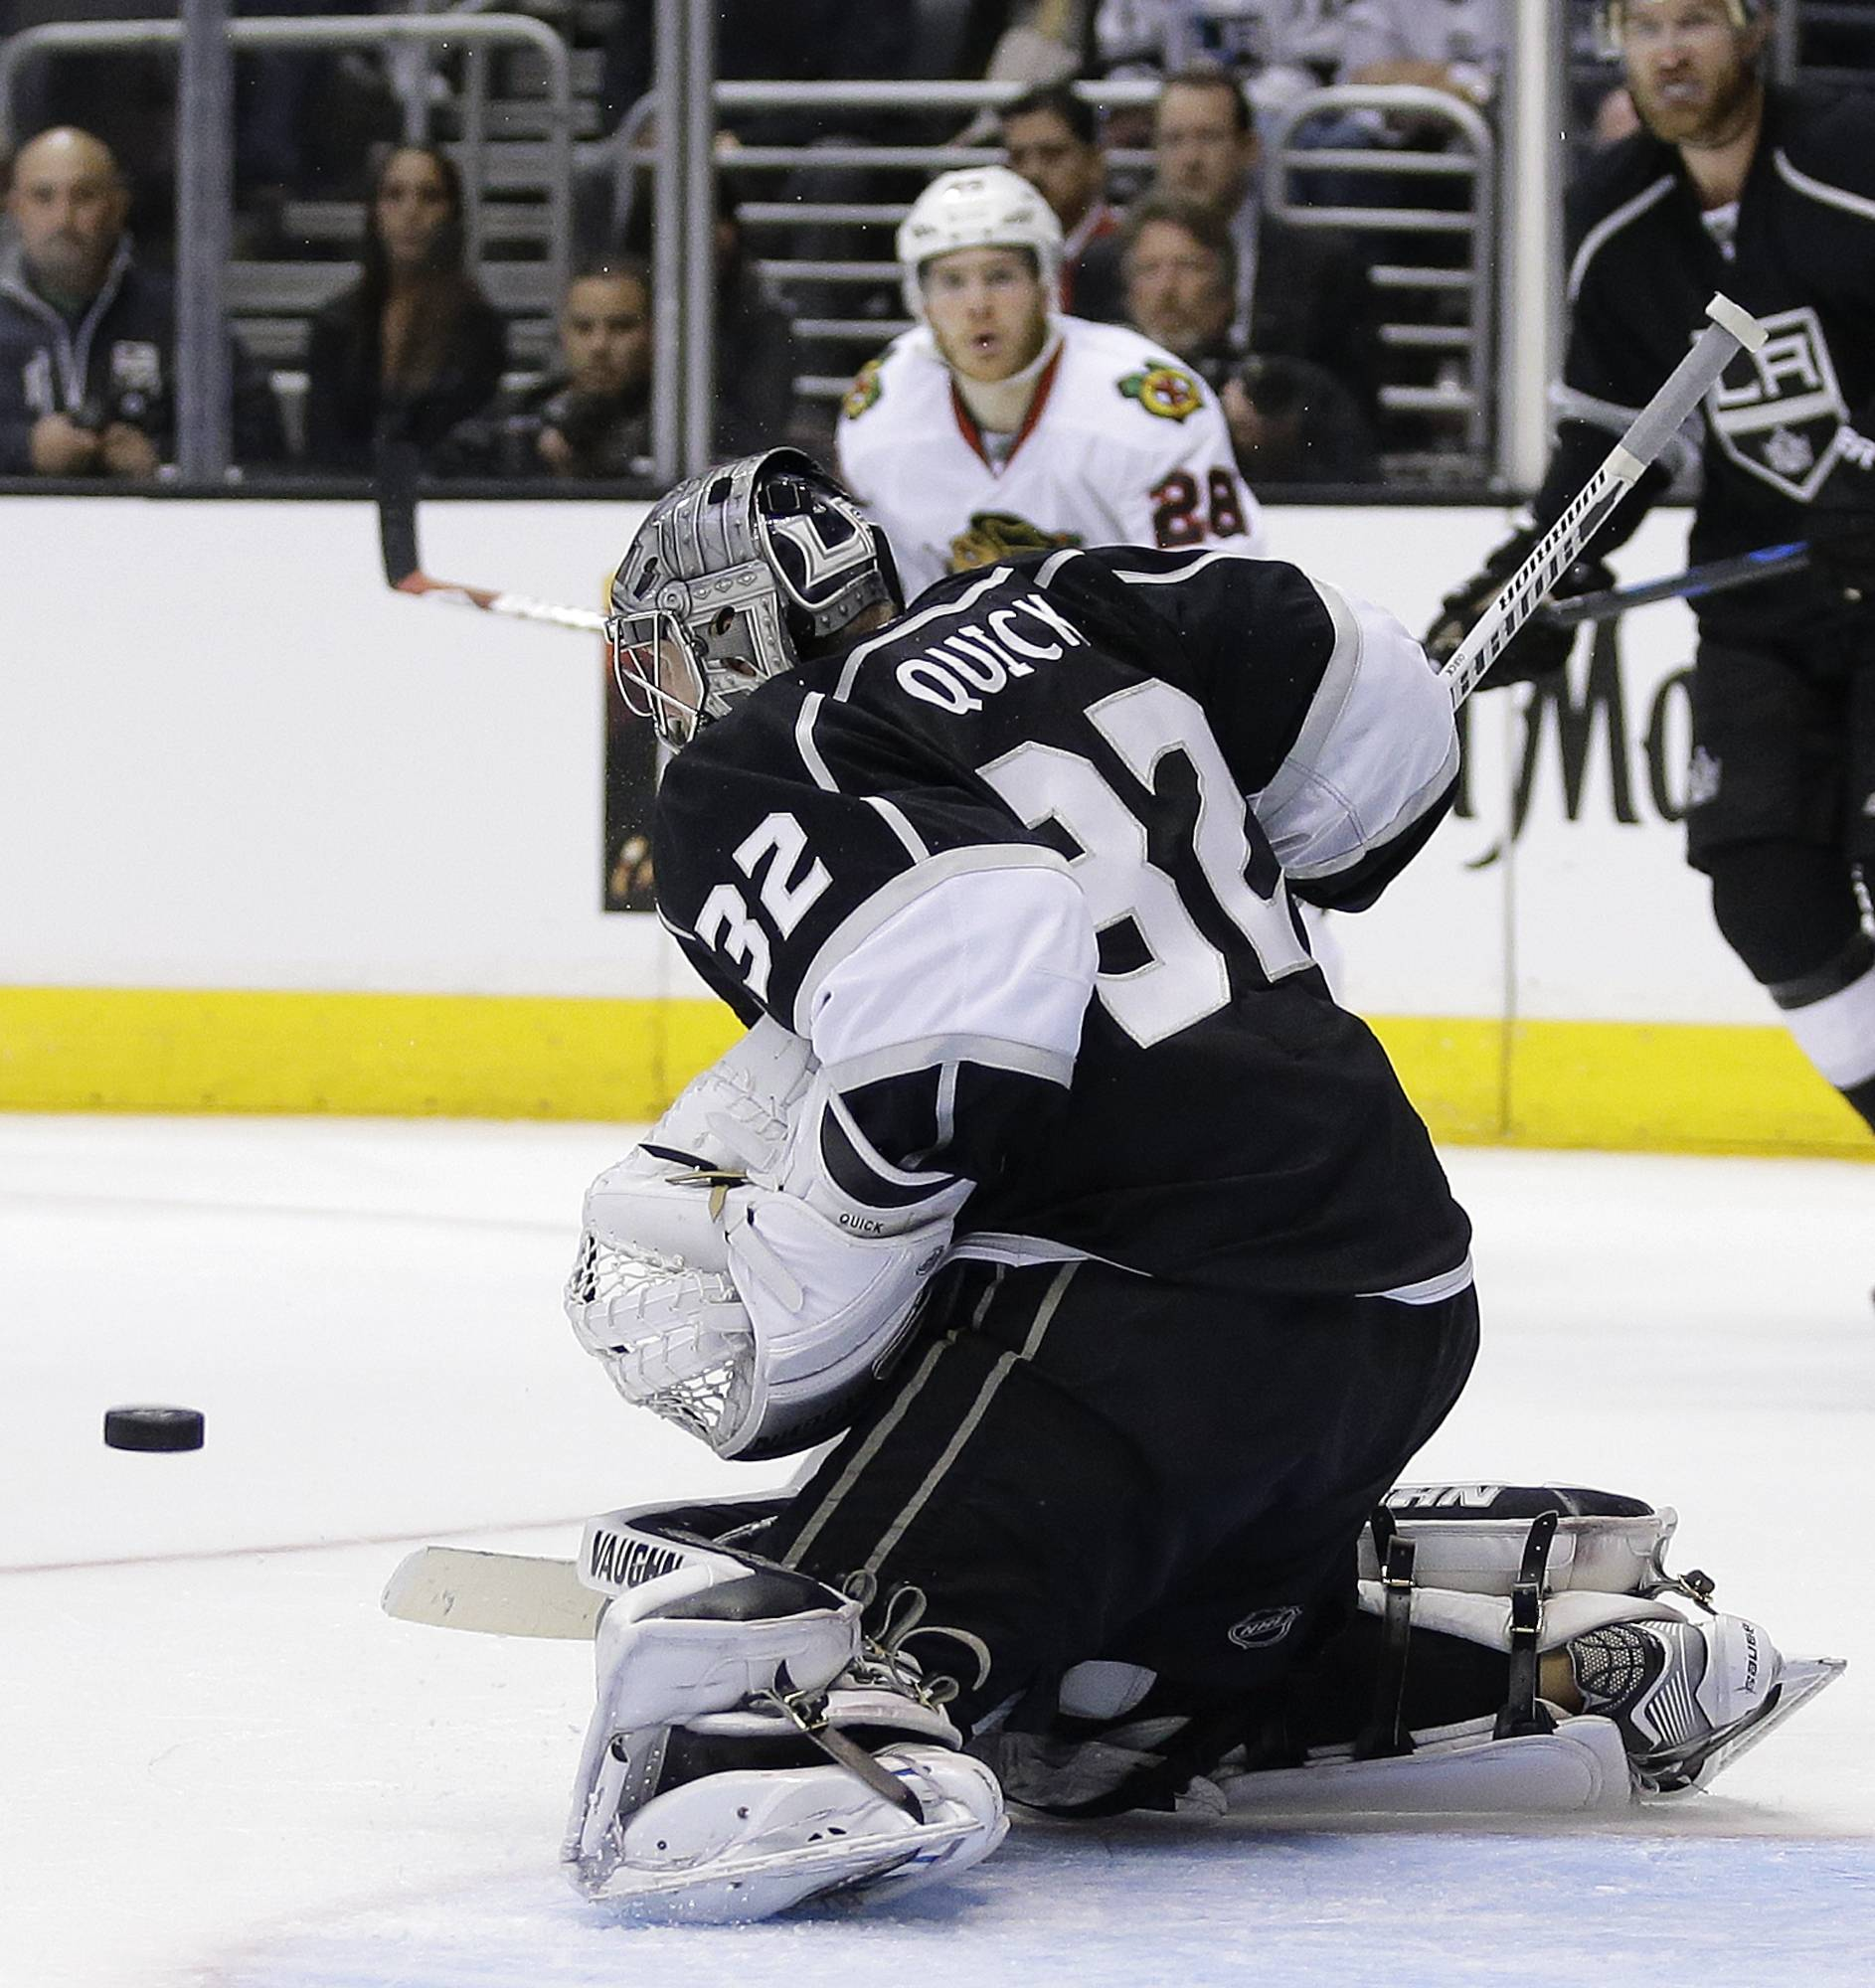 Los Angeles Kings goalie Jonathan Quick (32) blocks a shot by Chicago Blackhawks right wing Ben Smith during the third period of Game 3 of the Western Conference finals of the NHL hockey Stanley Cup playoffs in Los Angeles, Saturday, May 24, 2014.